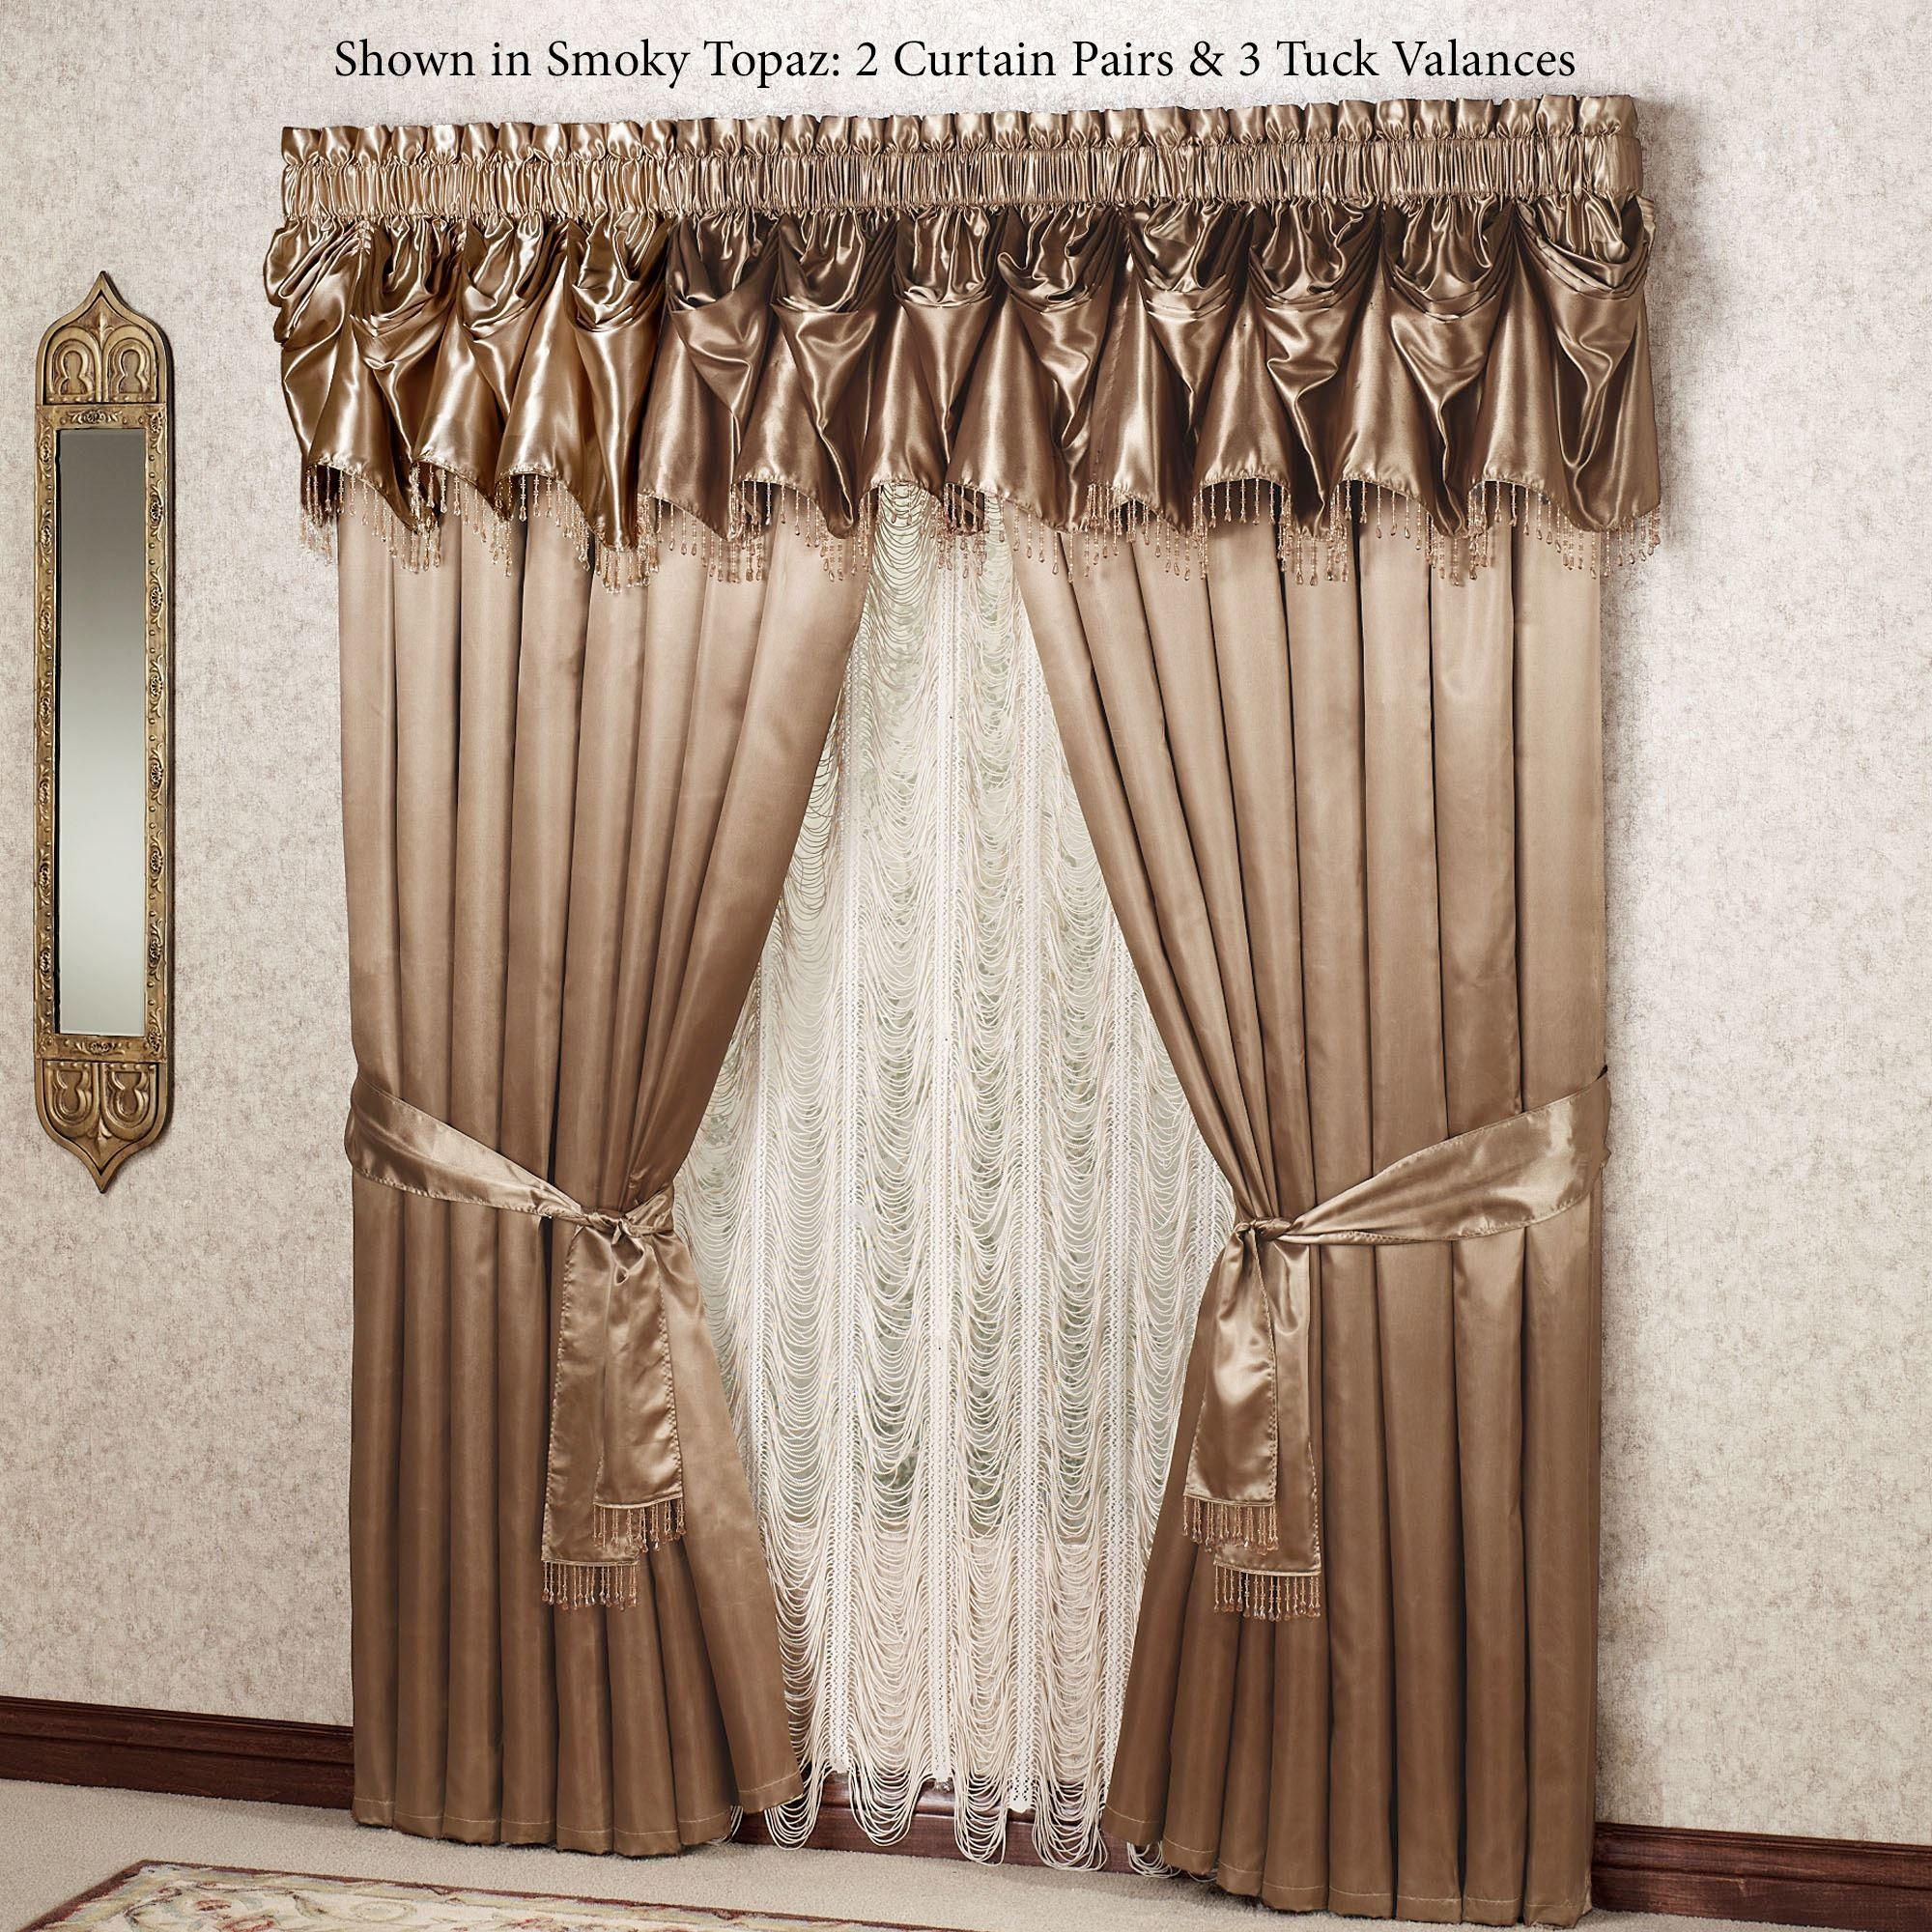 Portia Tuck Valance Window Treatments